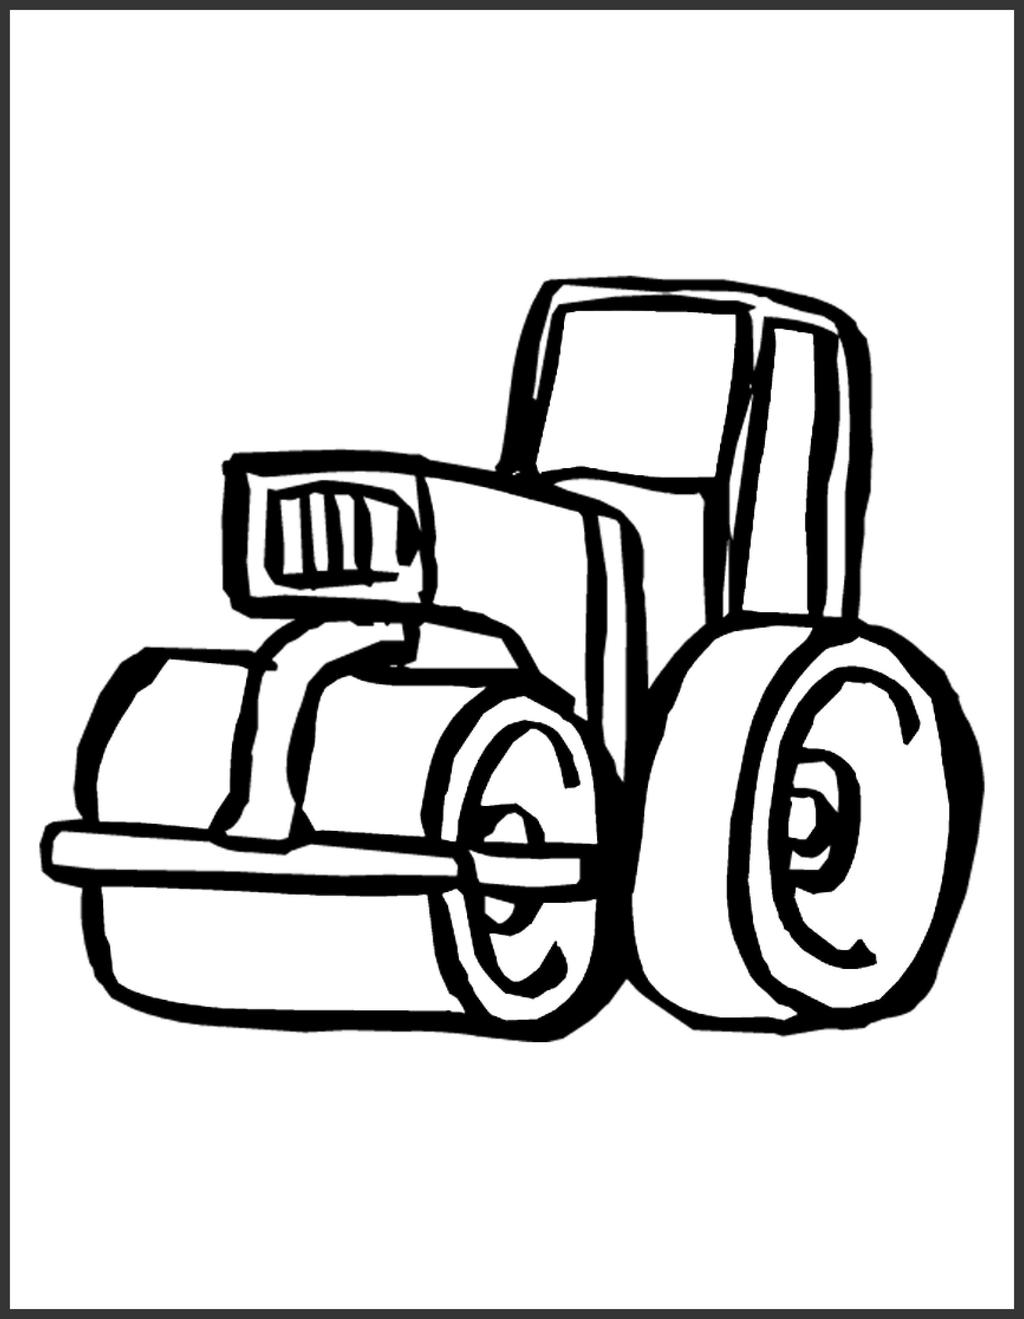 Free Construction Equipment Coloring Pages Fascinating Exploit printable